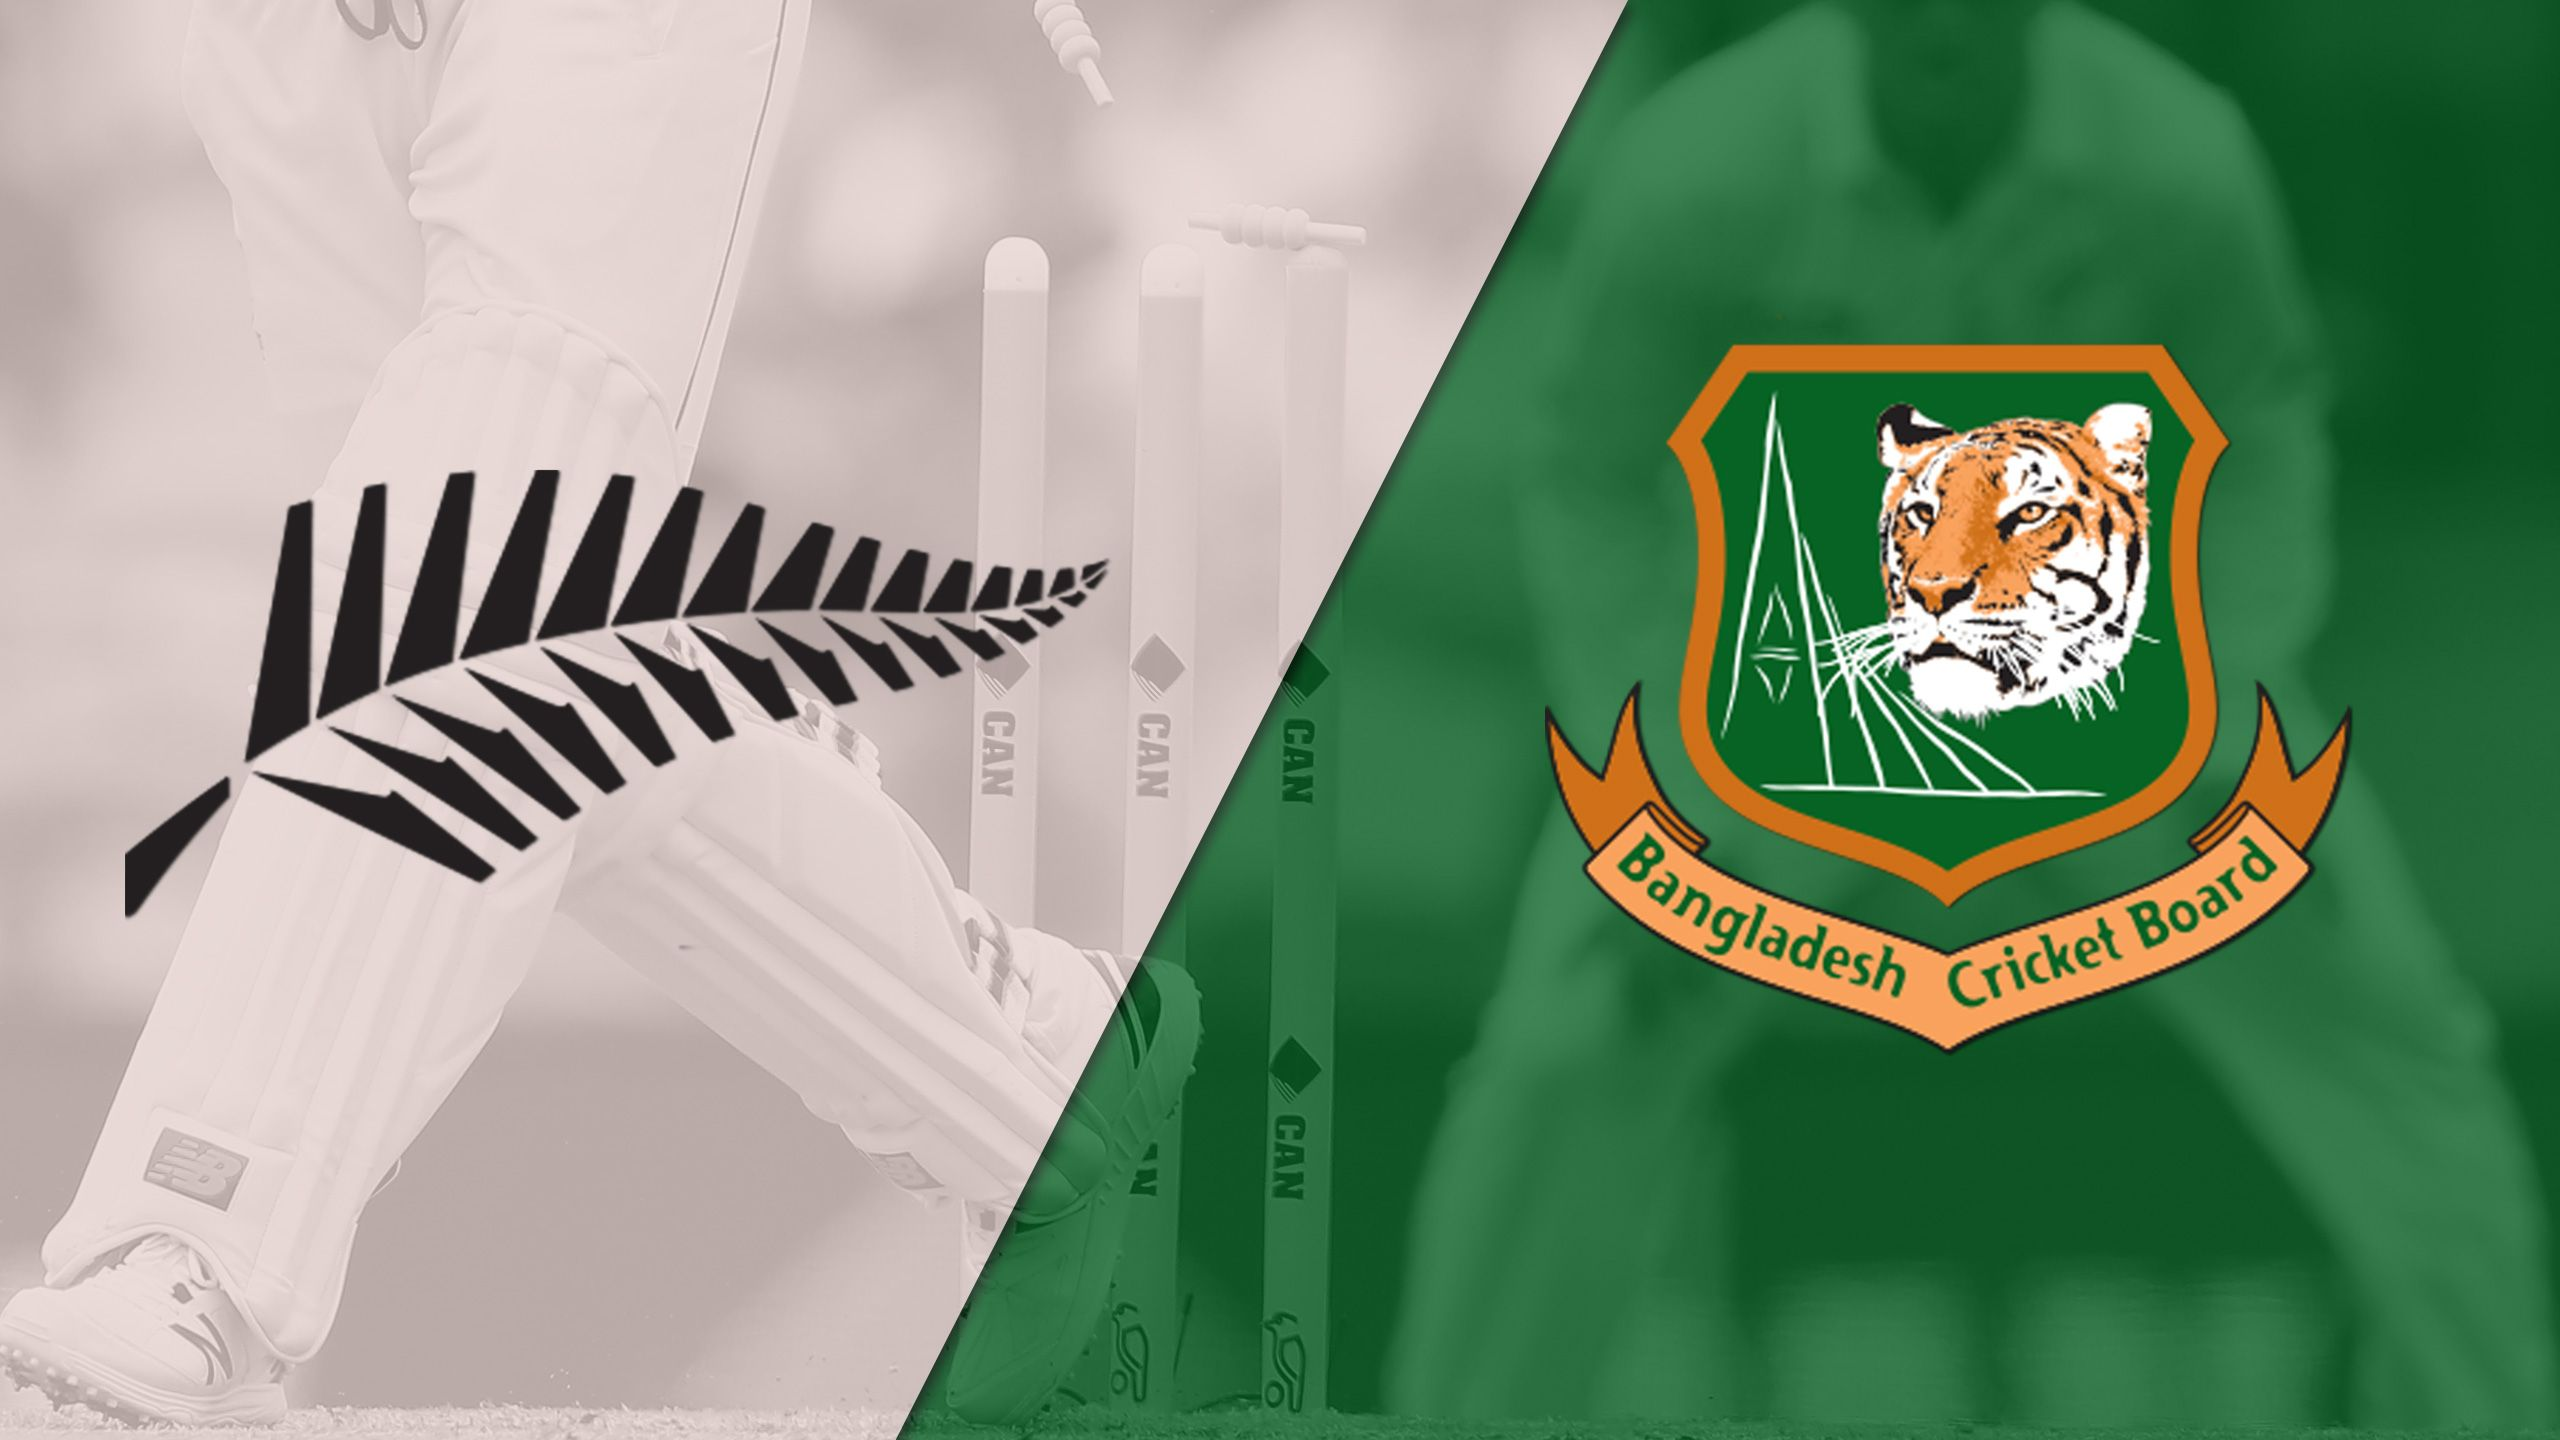 New Zealand vs. Bangladesh (International Cricket)